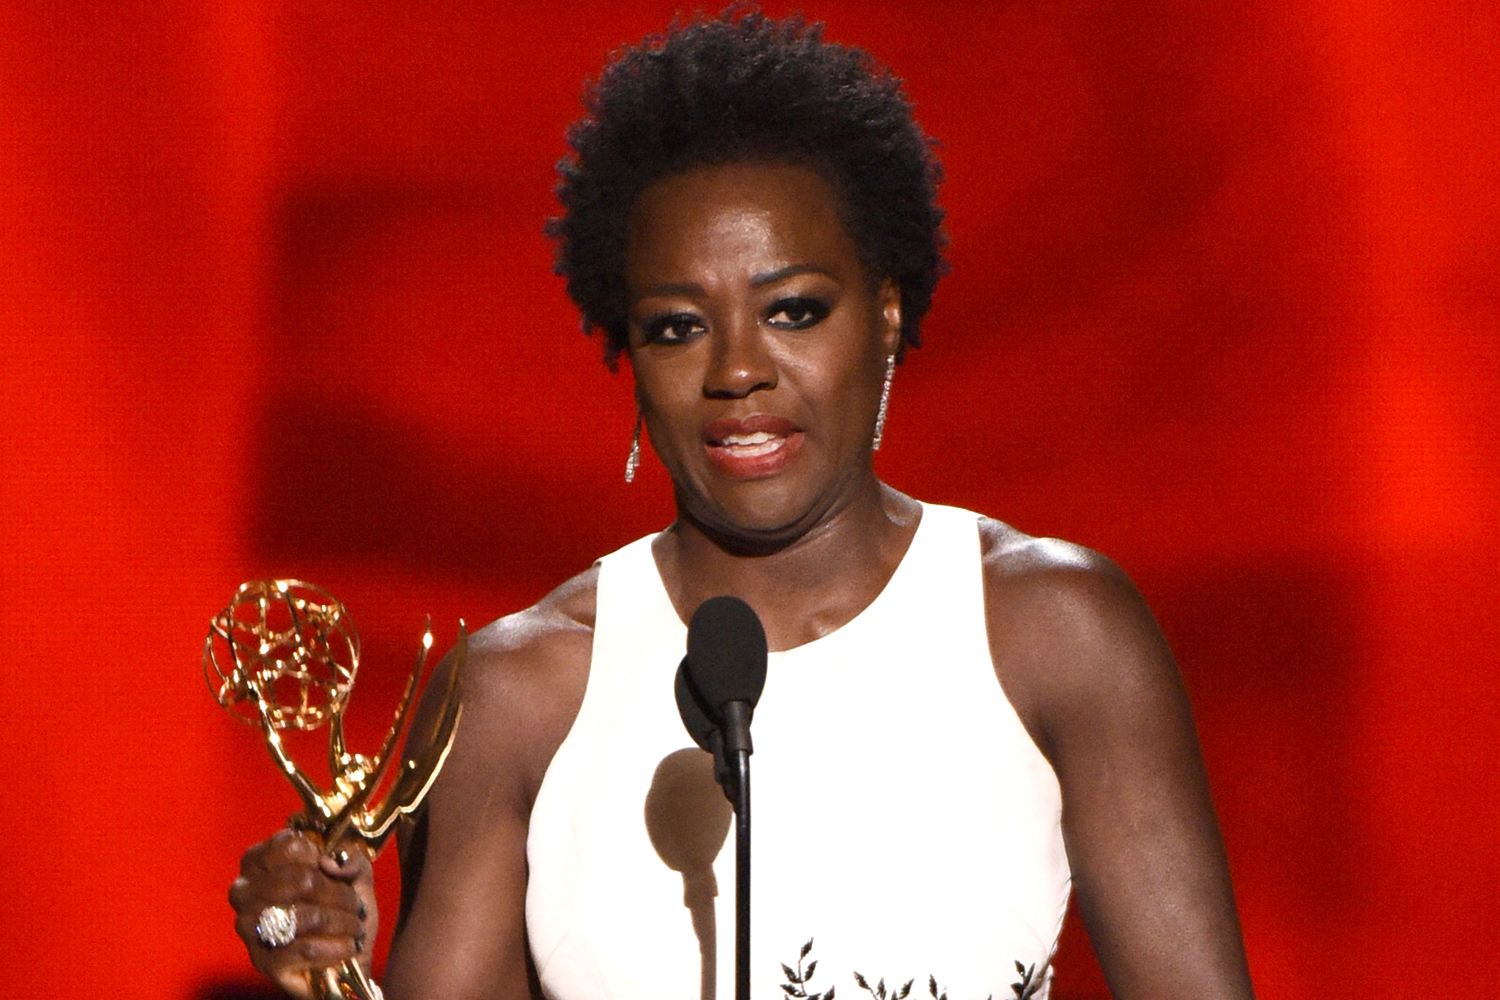 Viola Davis accepts Outstanding Lead Actress in a Drama Series award for 'How to Get Away with Murder' onstage during the 67th Annual Primetime Emmy Awards